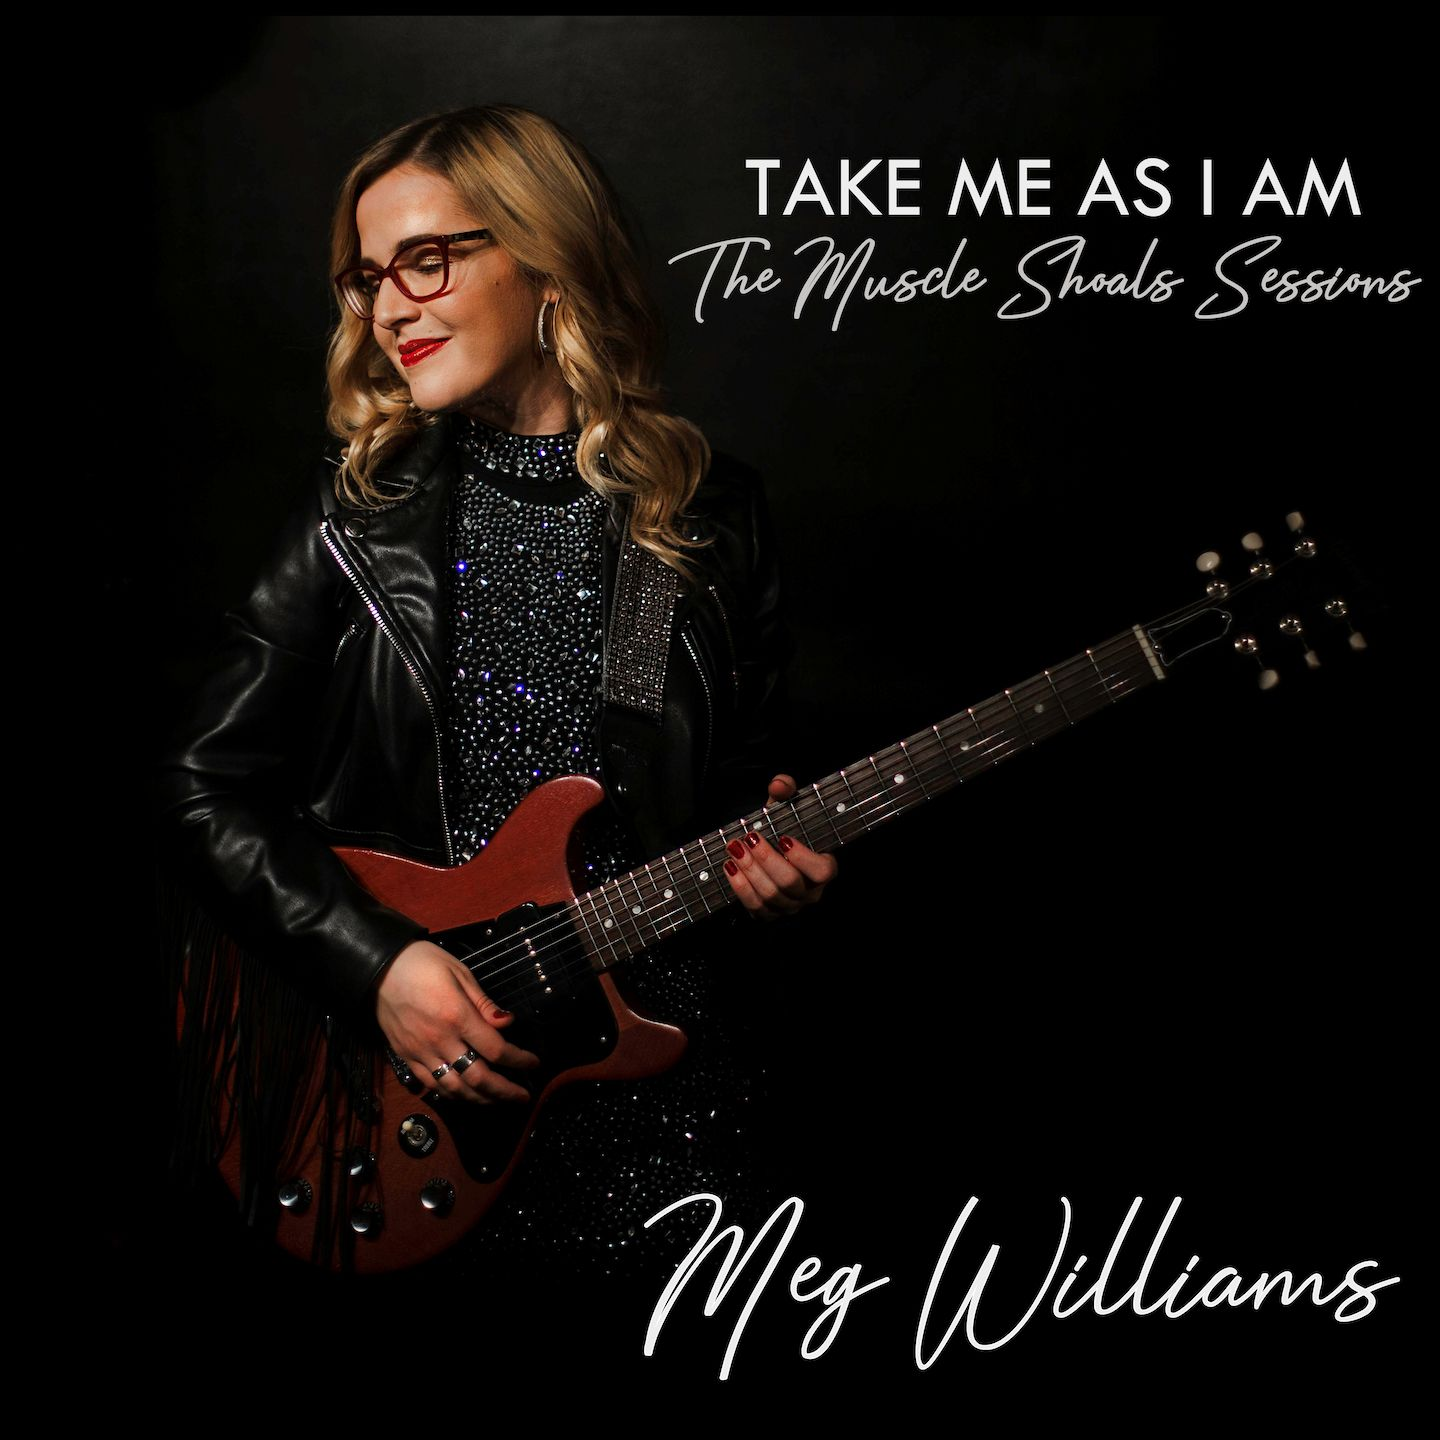 Take Me As I Am: The Muscle Shoals Sessions (photo by Kristin Jaggers)